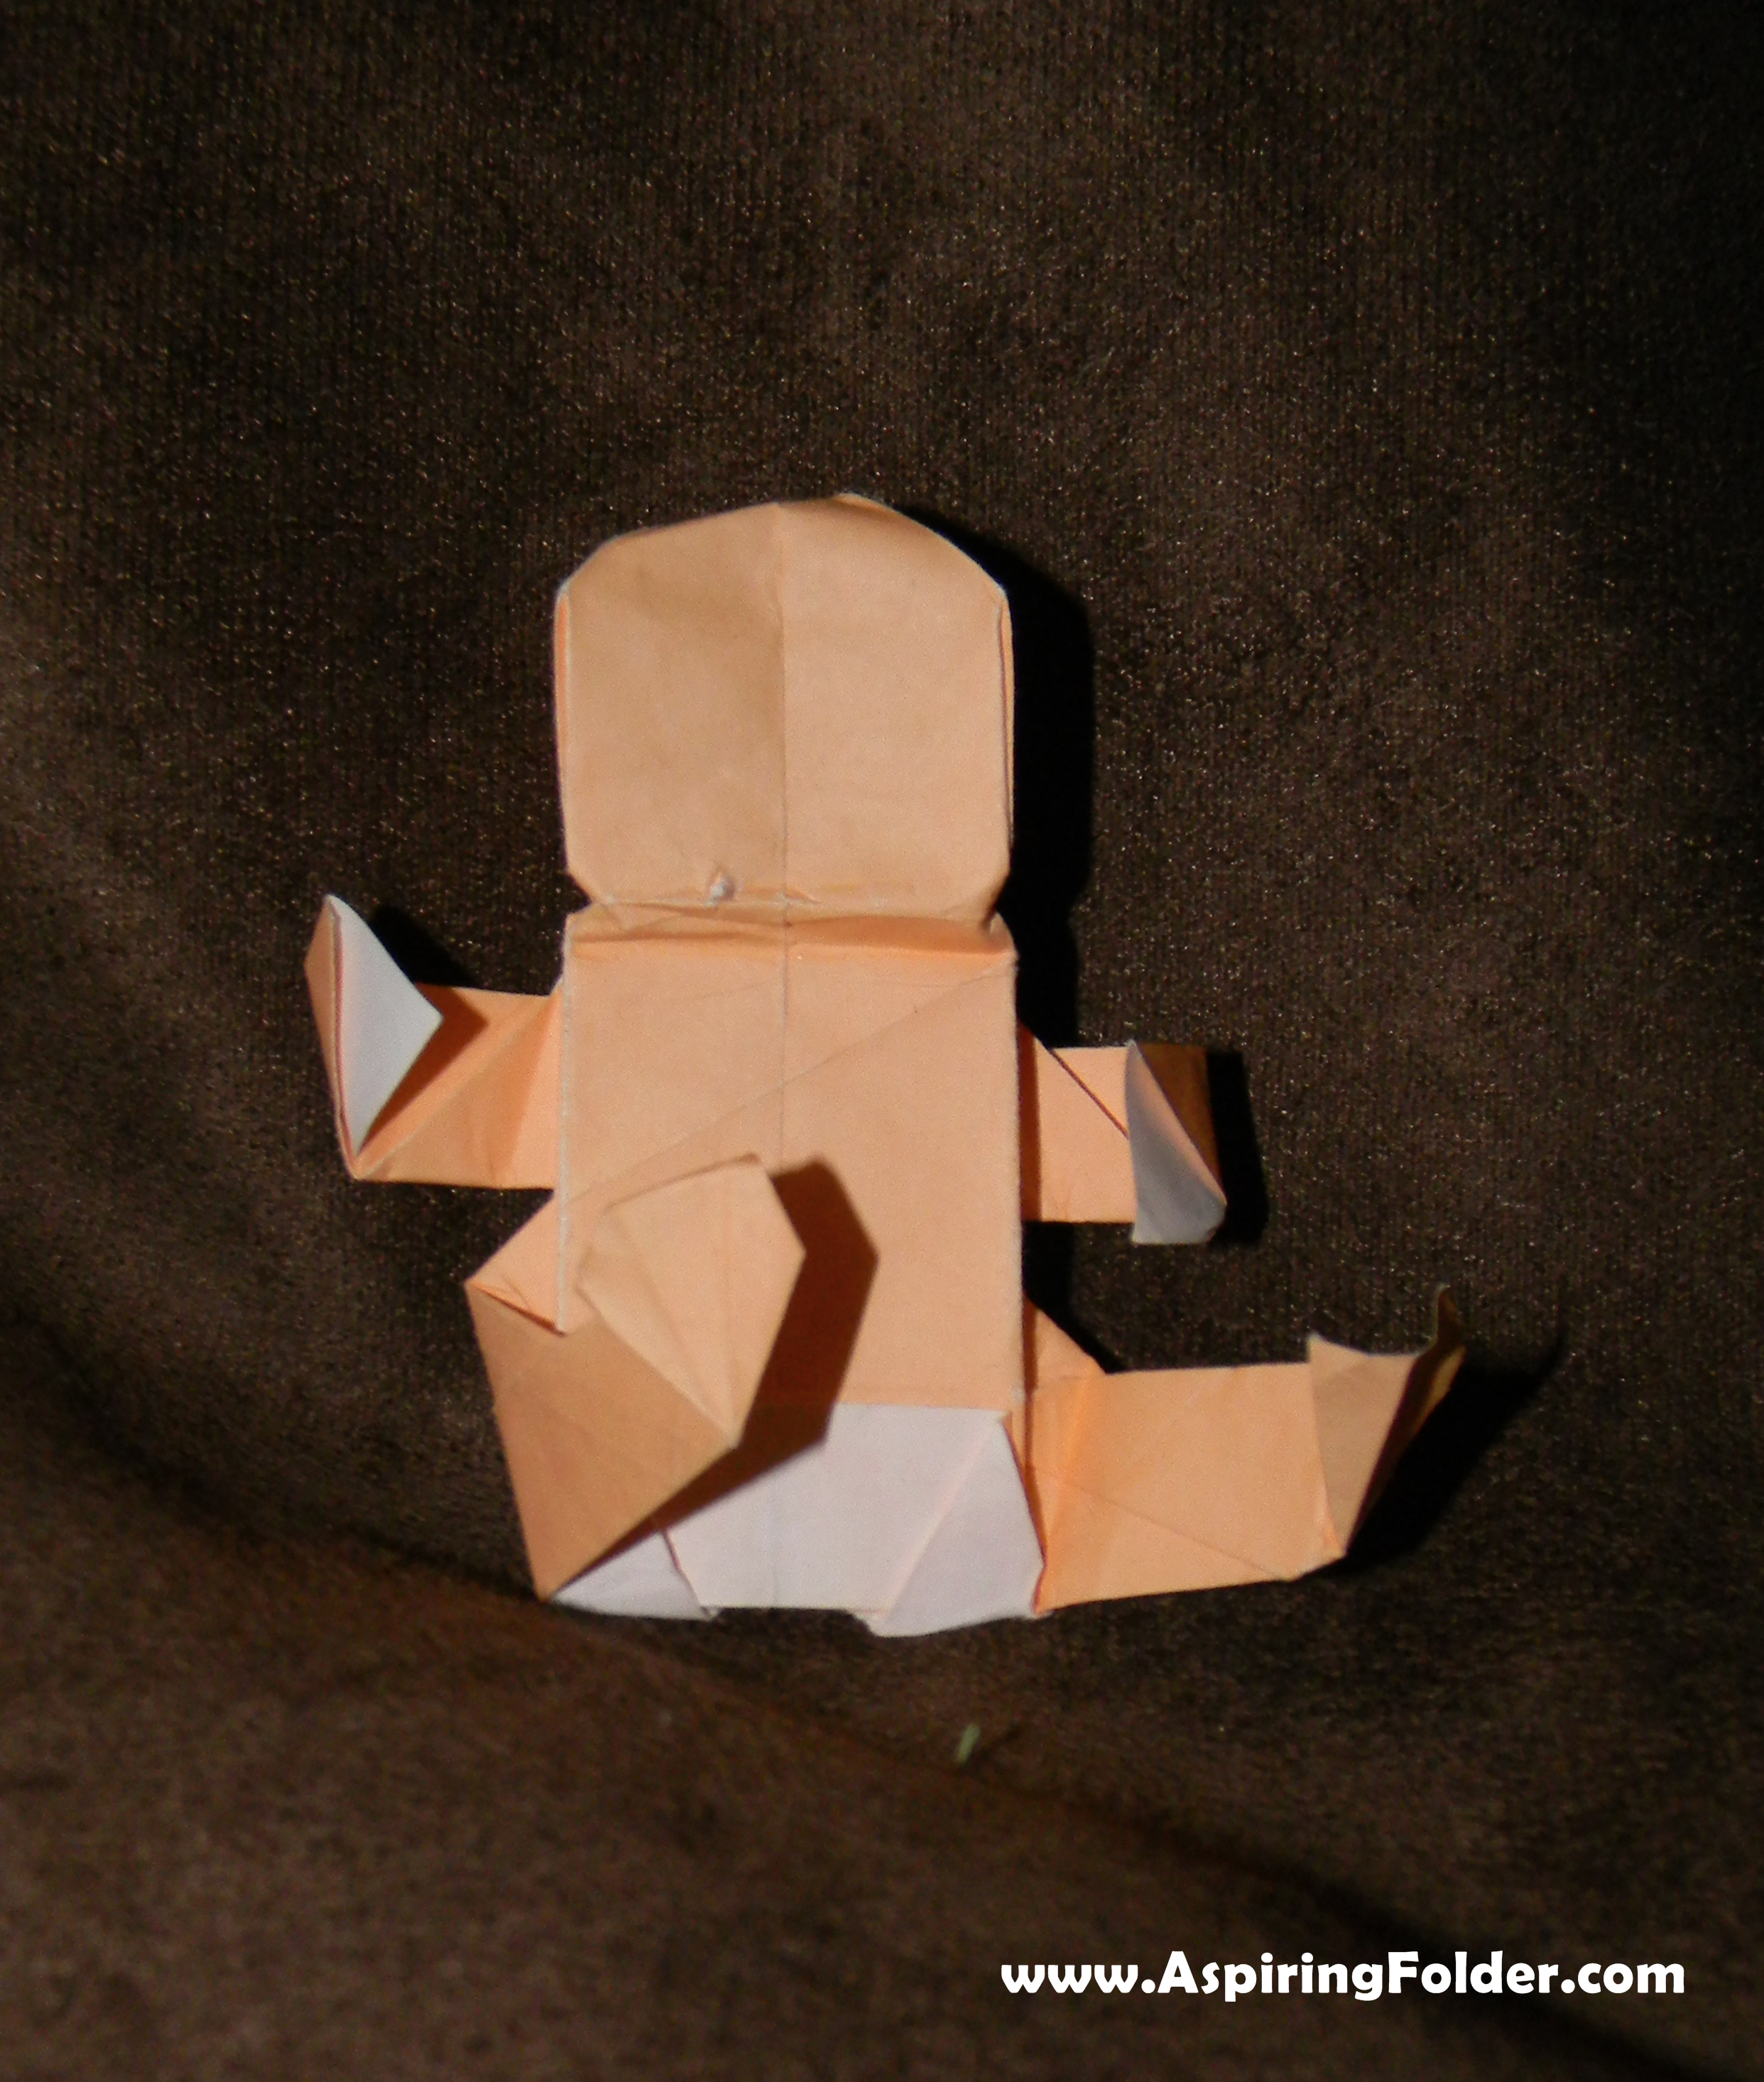 Aspiring folder an origami blog page 7 robert j lang designed this origami baby model and you can find the diagram in his book origami design secrets mathematical methods for an ancient art jeuxipadfo Image collections